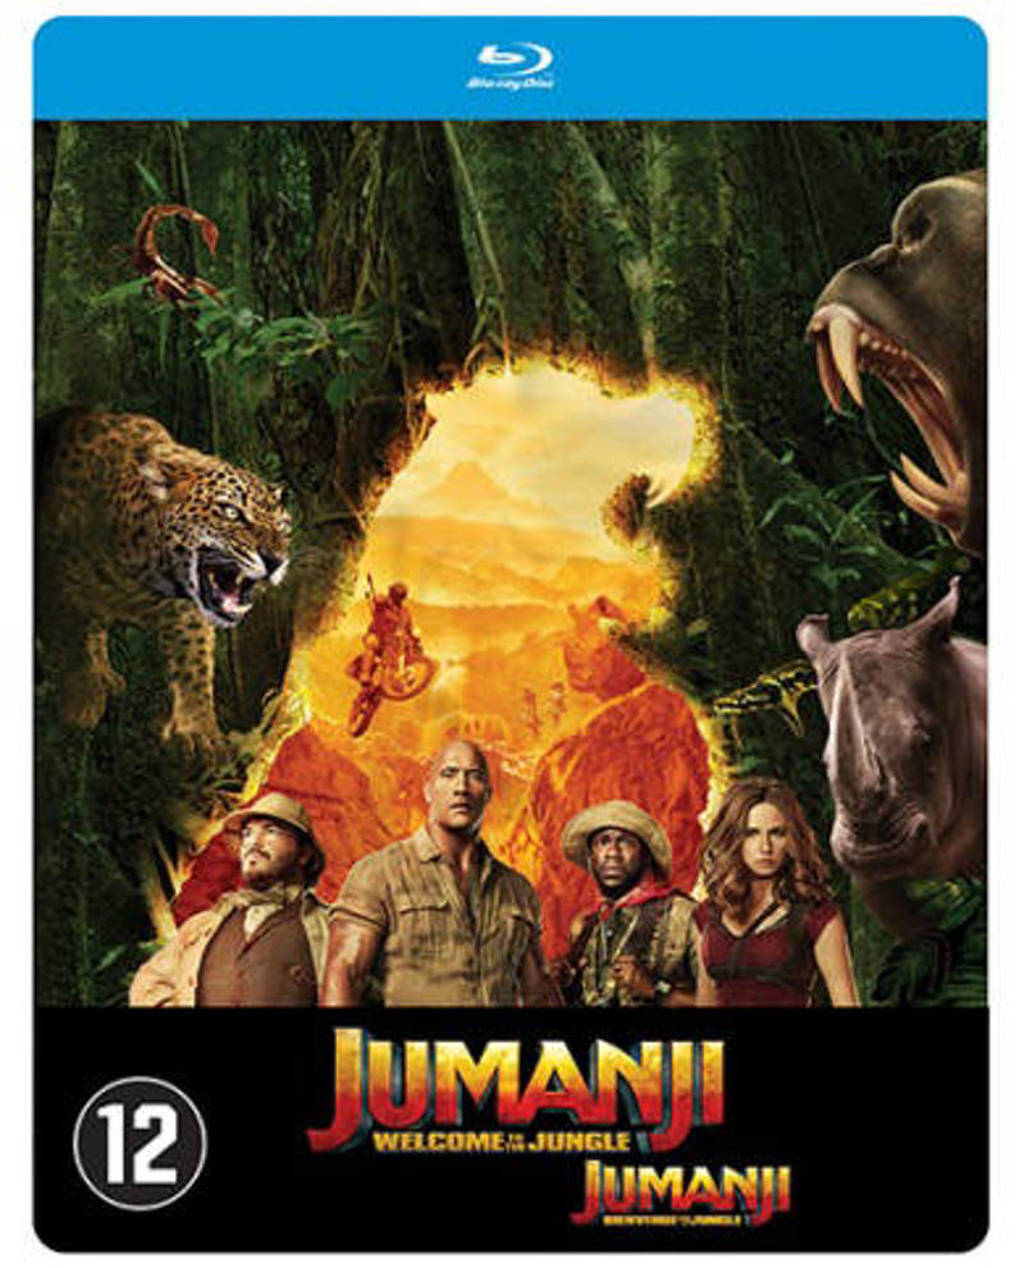 Jumanji - Welcome to the jungle (Steelbook) (Blu-ray)